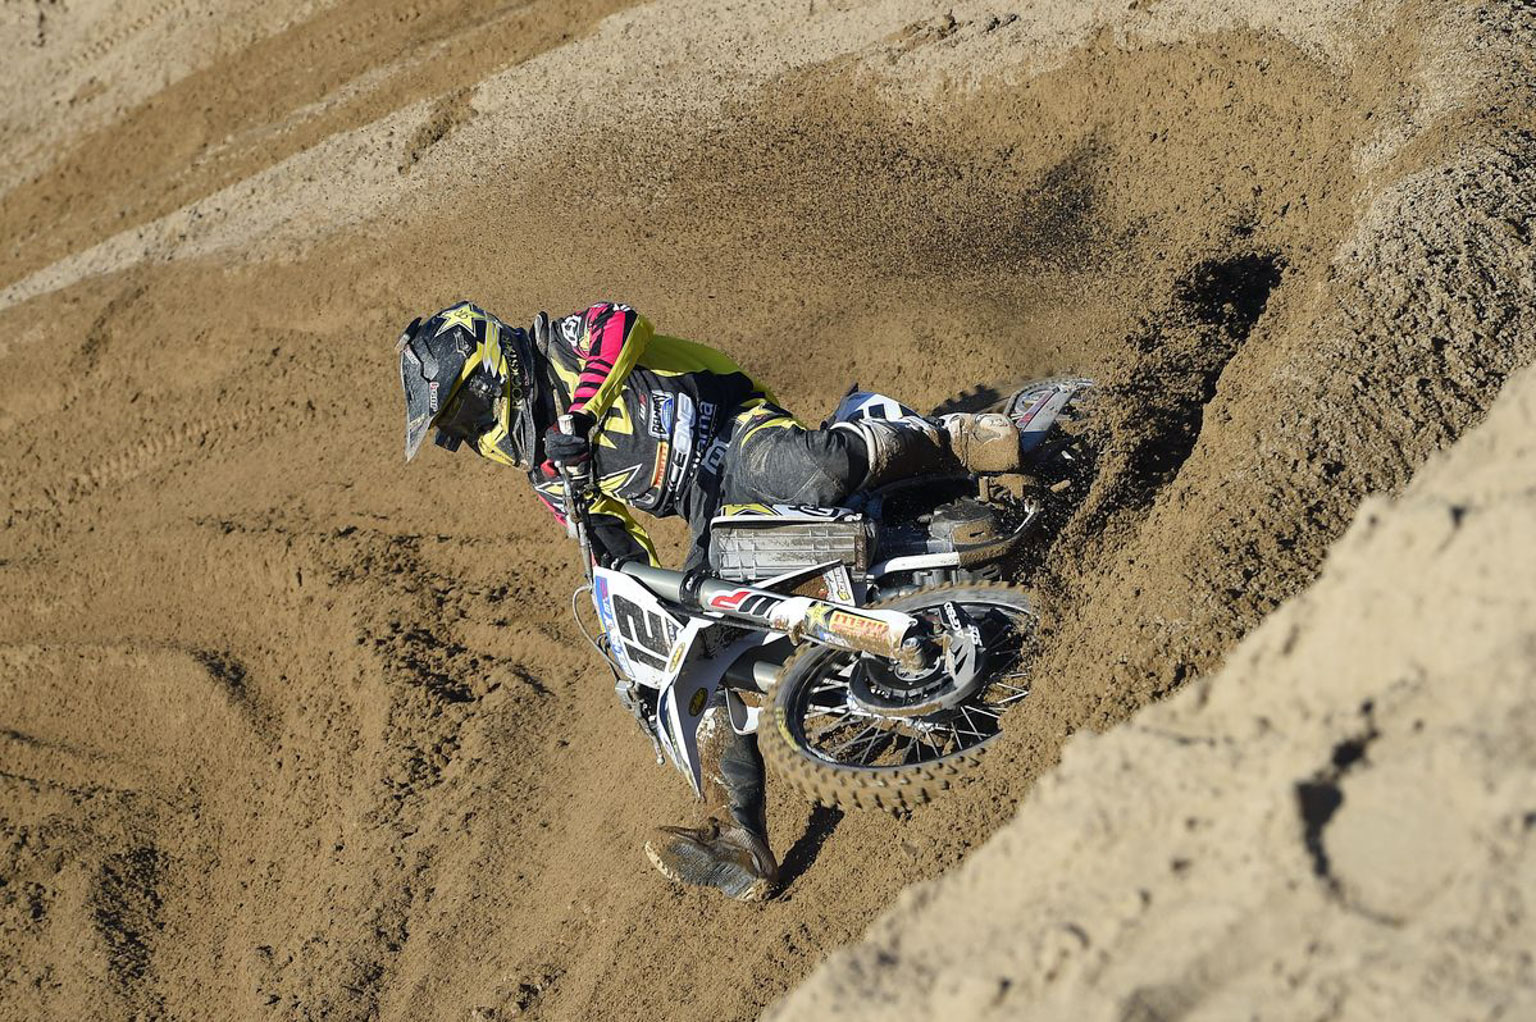 Max Nagl didn't have the greatest day